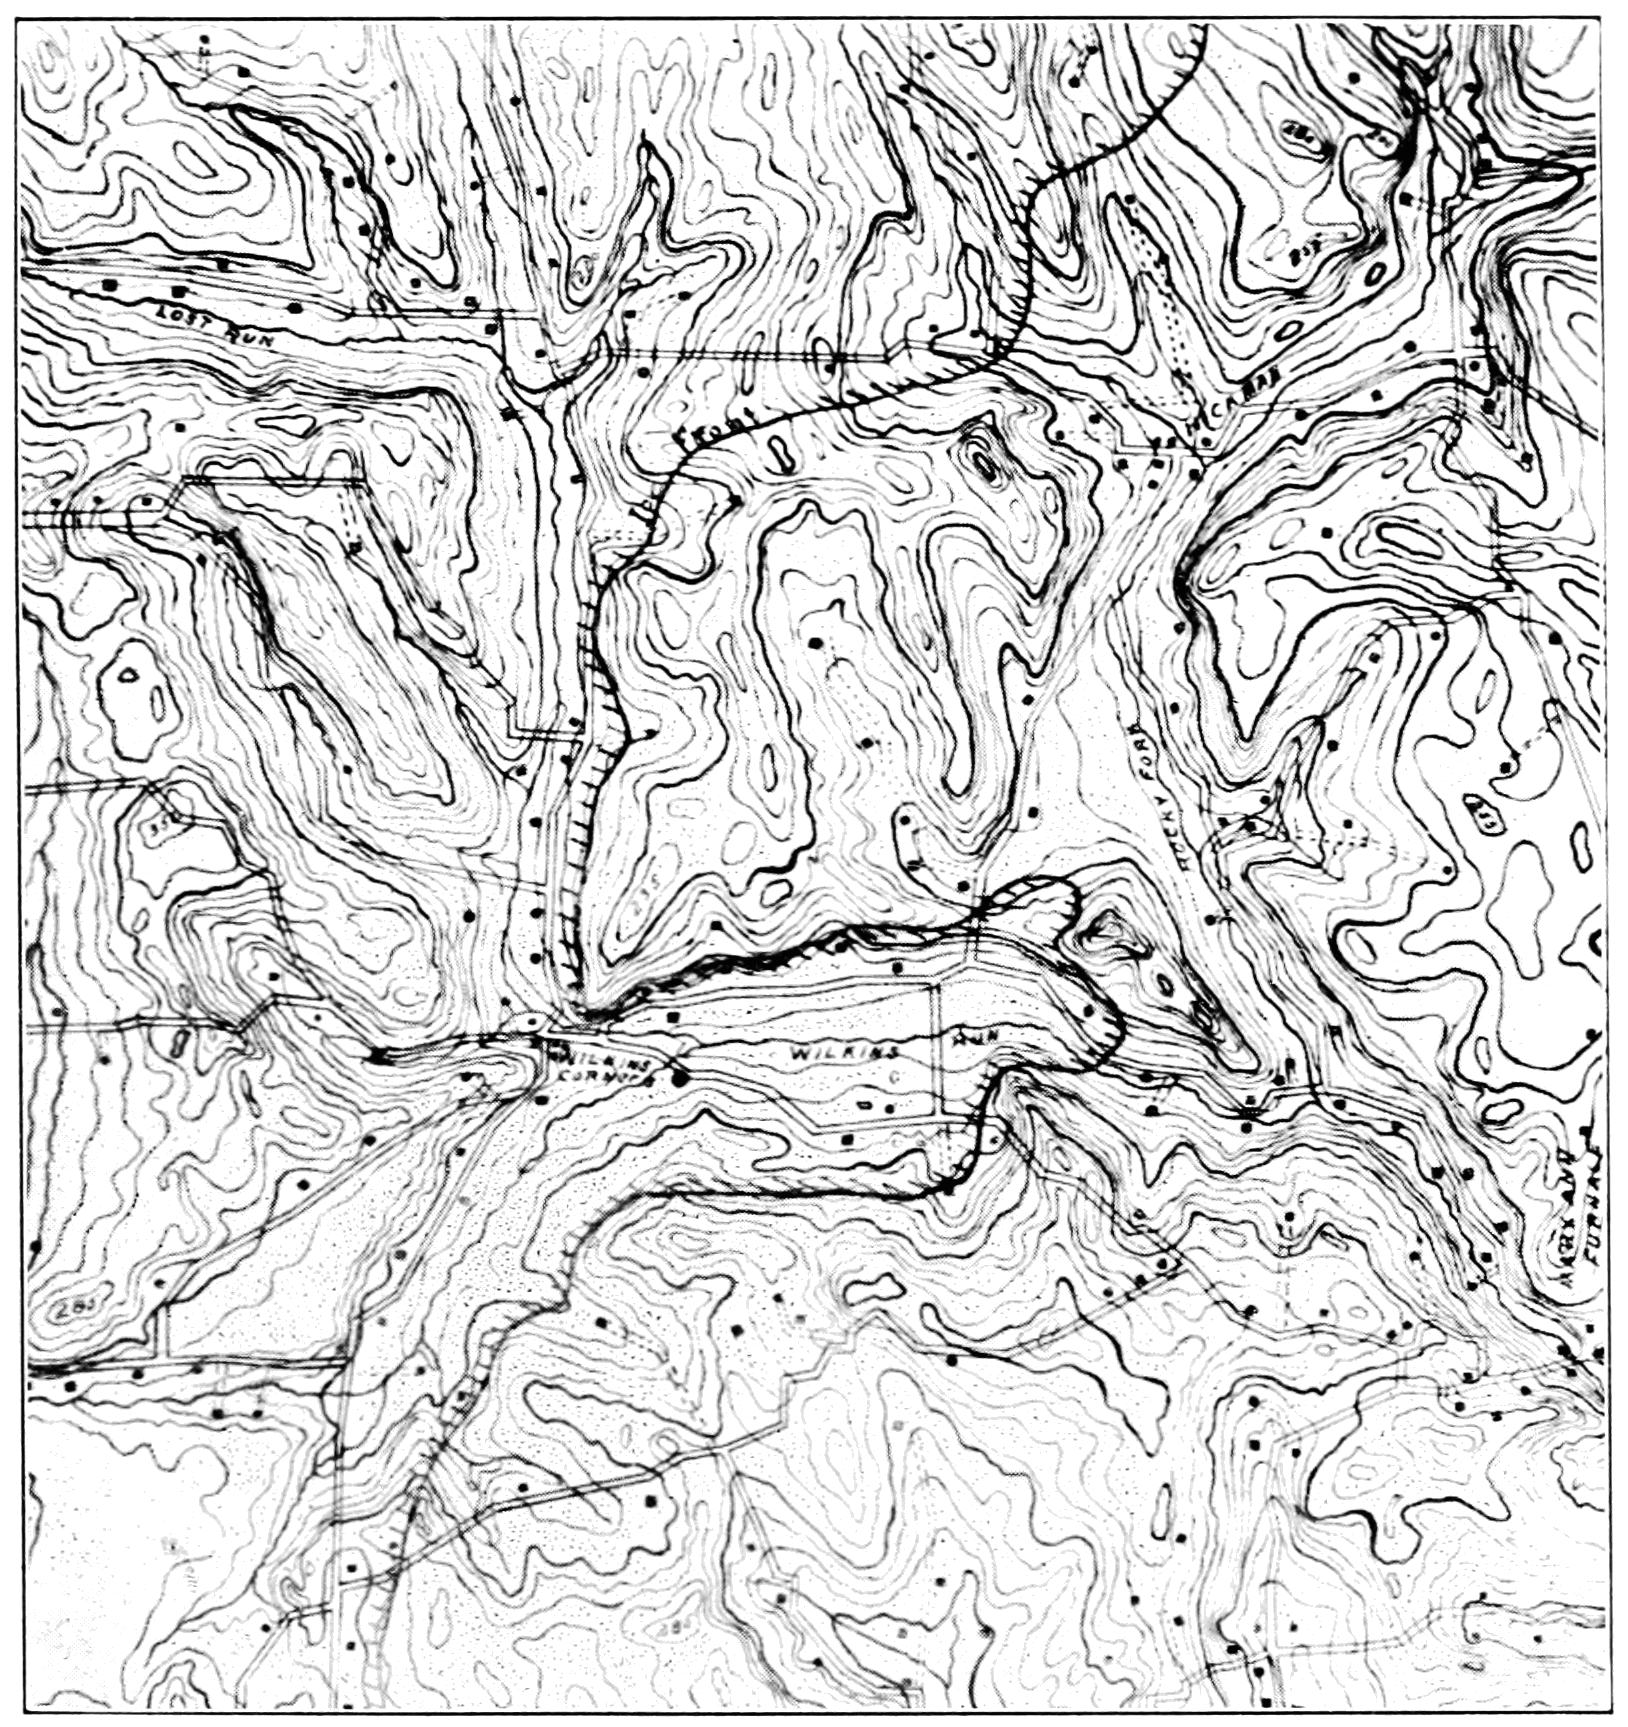 Human Settlement Png - File:PSM V72 D507 Topographic map of water sources and human ...